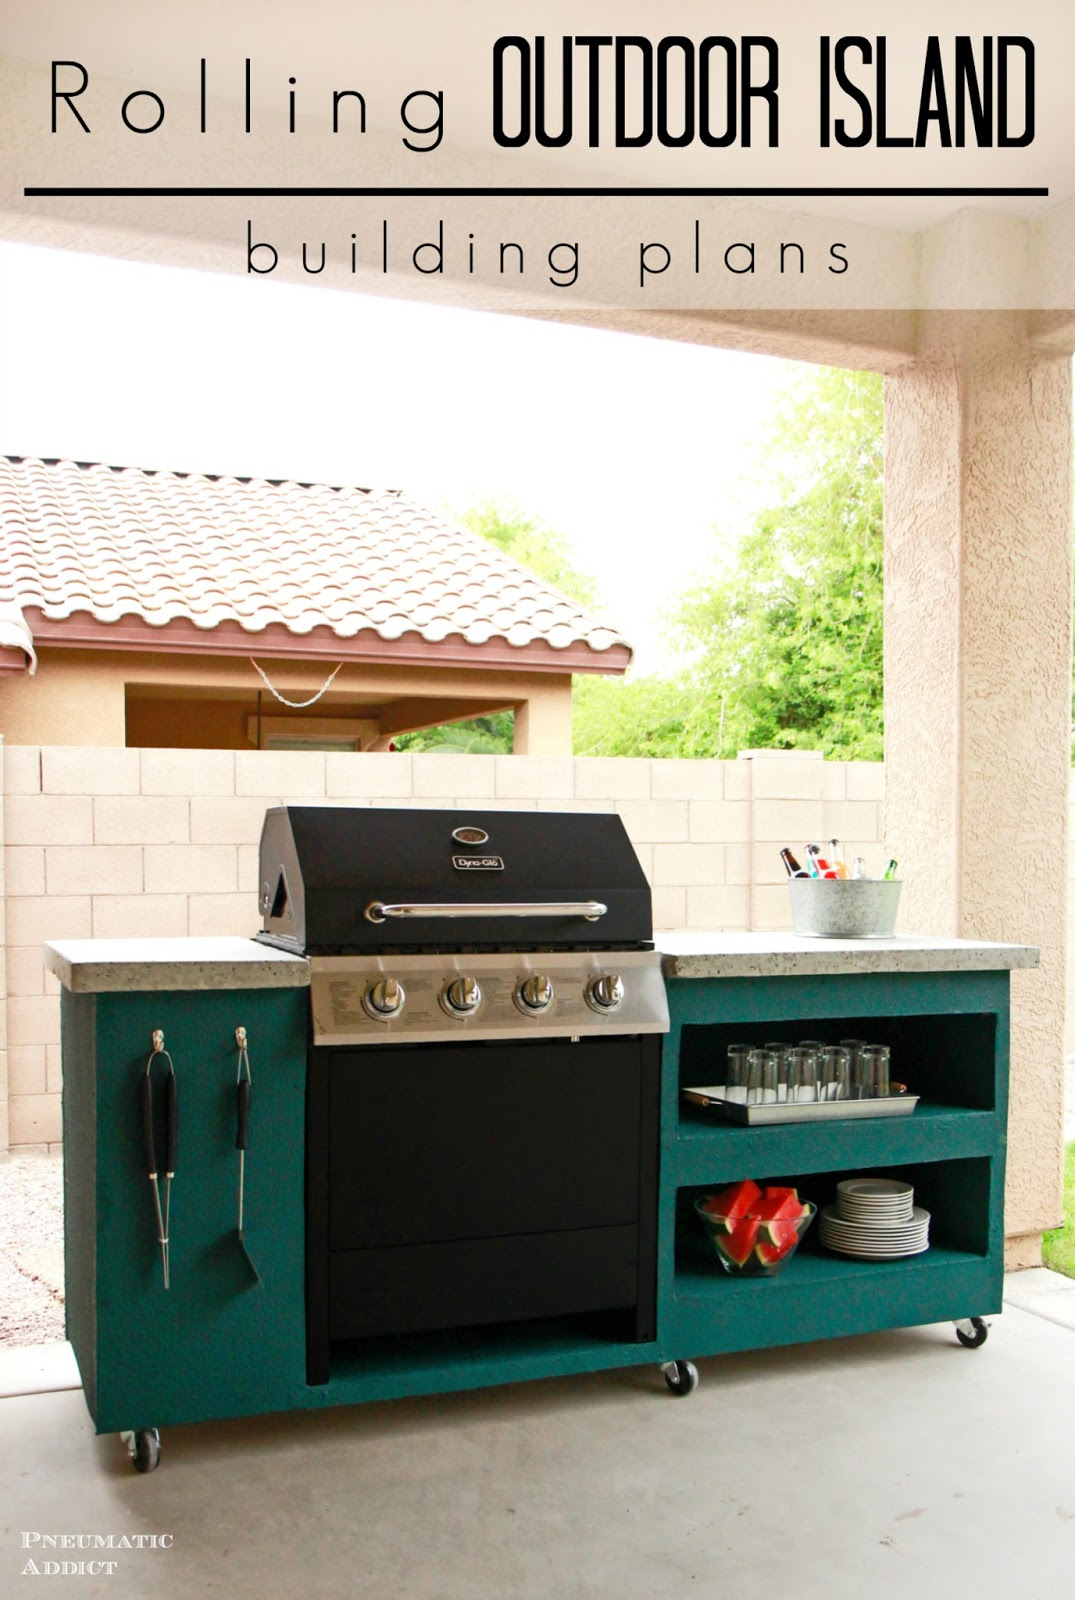 Build Your Own Outdoor Kitchen Island Ikea Canada Pneumatic Addict Rolling Building Plans